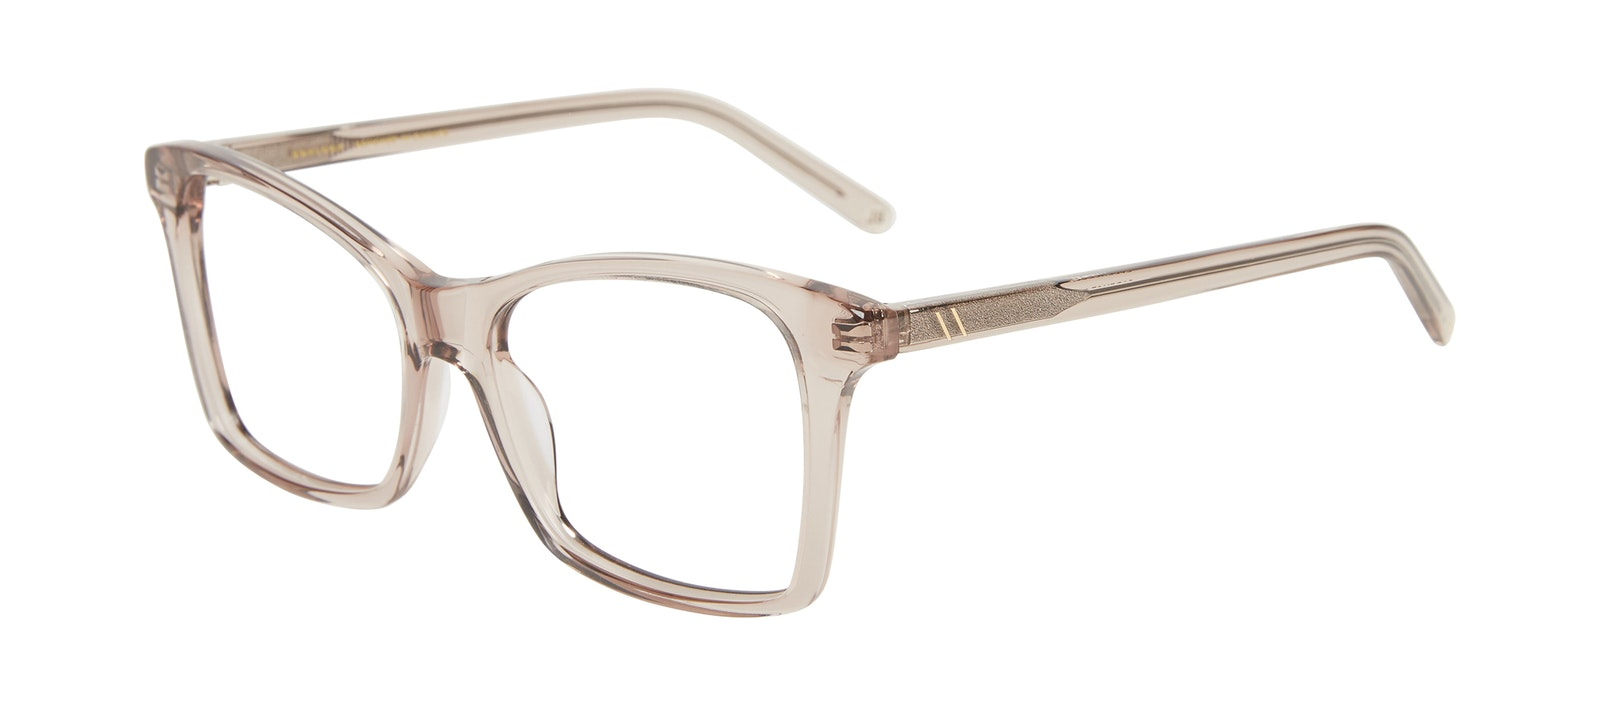 Affordable Fashion Glasses Square Eyeglasses Women Cadence Sand Tilt